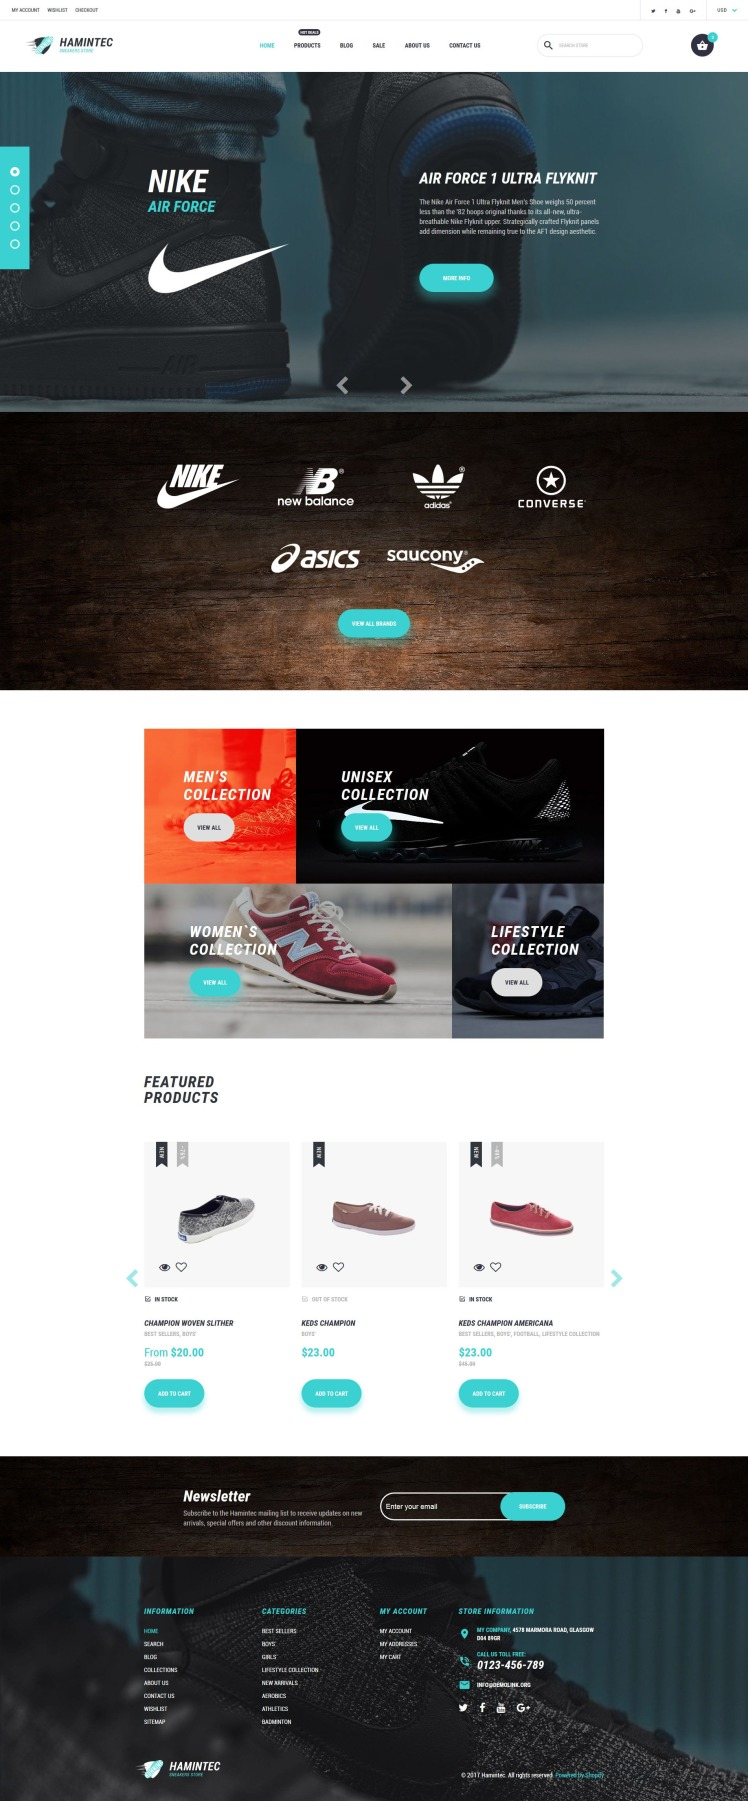 Hamintec Luxury Quality Sneakers Store Shopify Theme